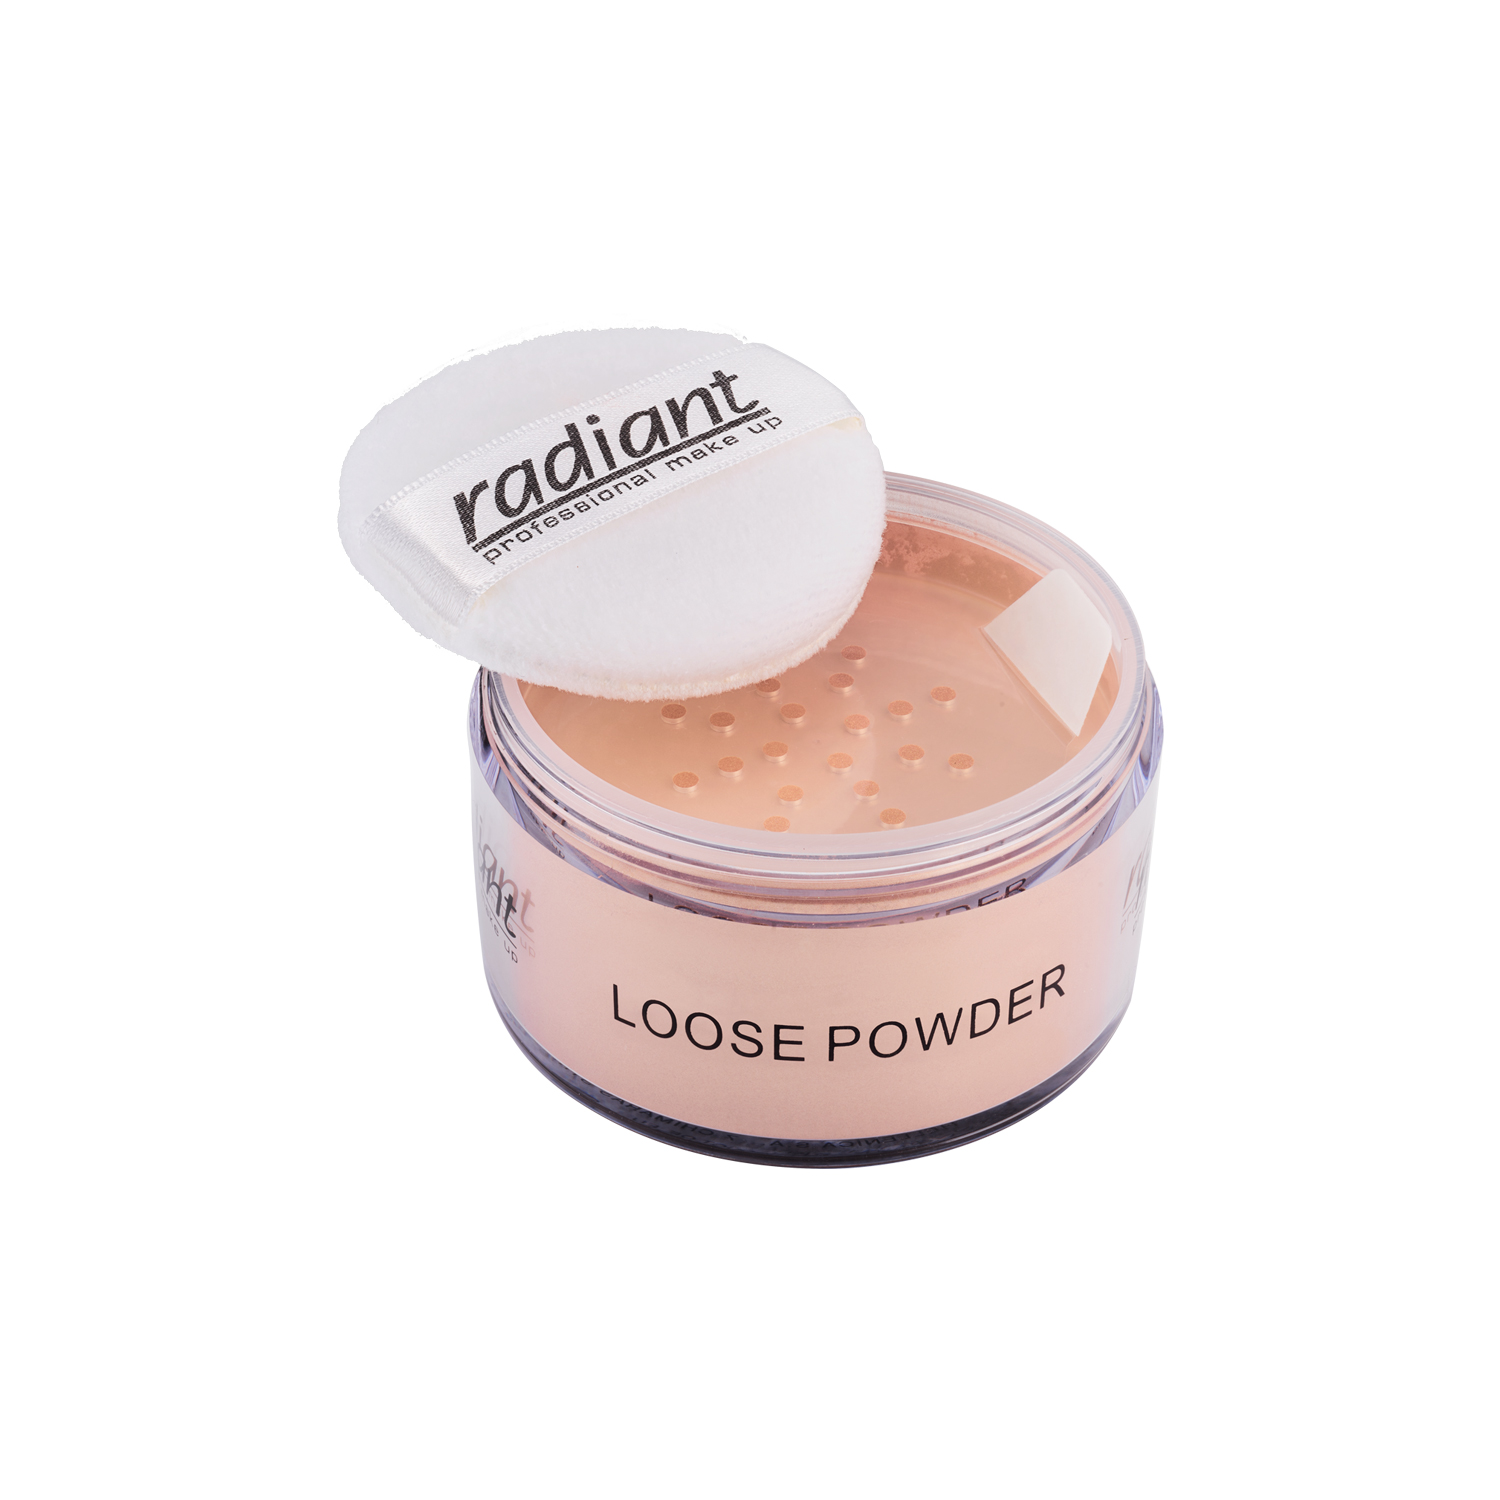 LOOSE POWDER (06 Natural Tan)